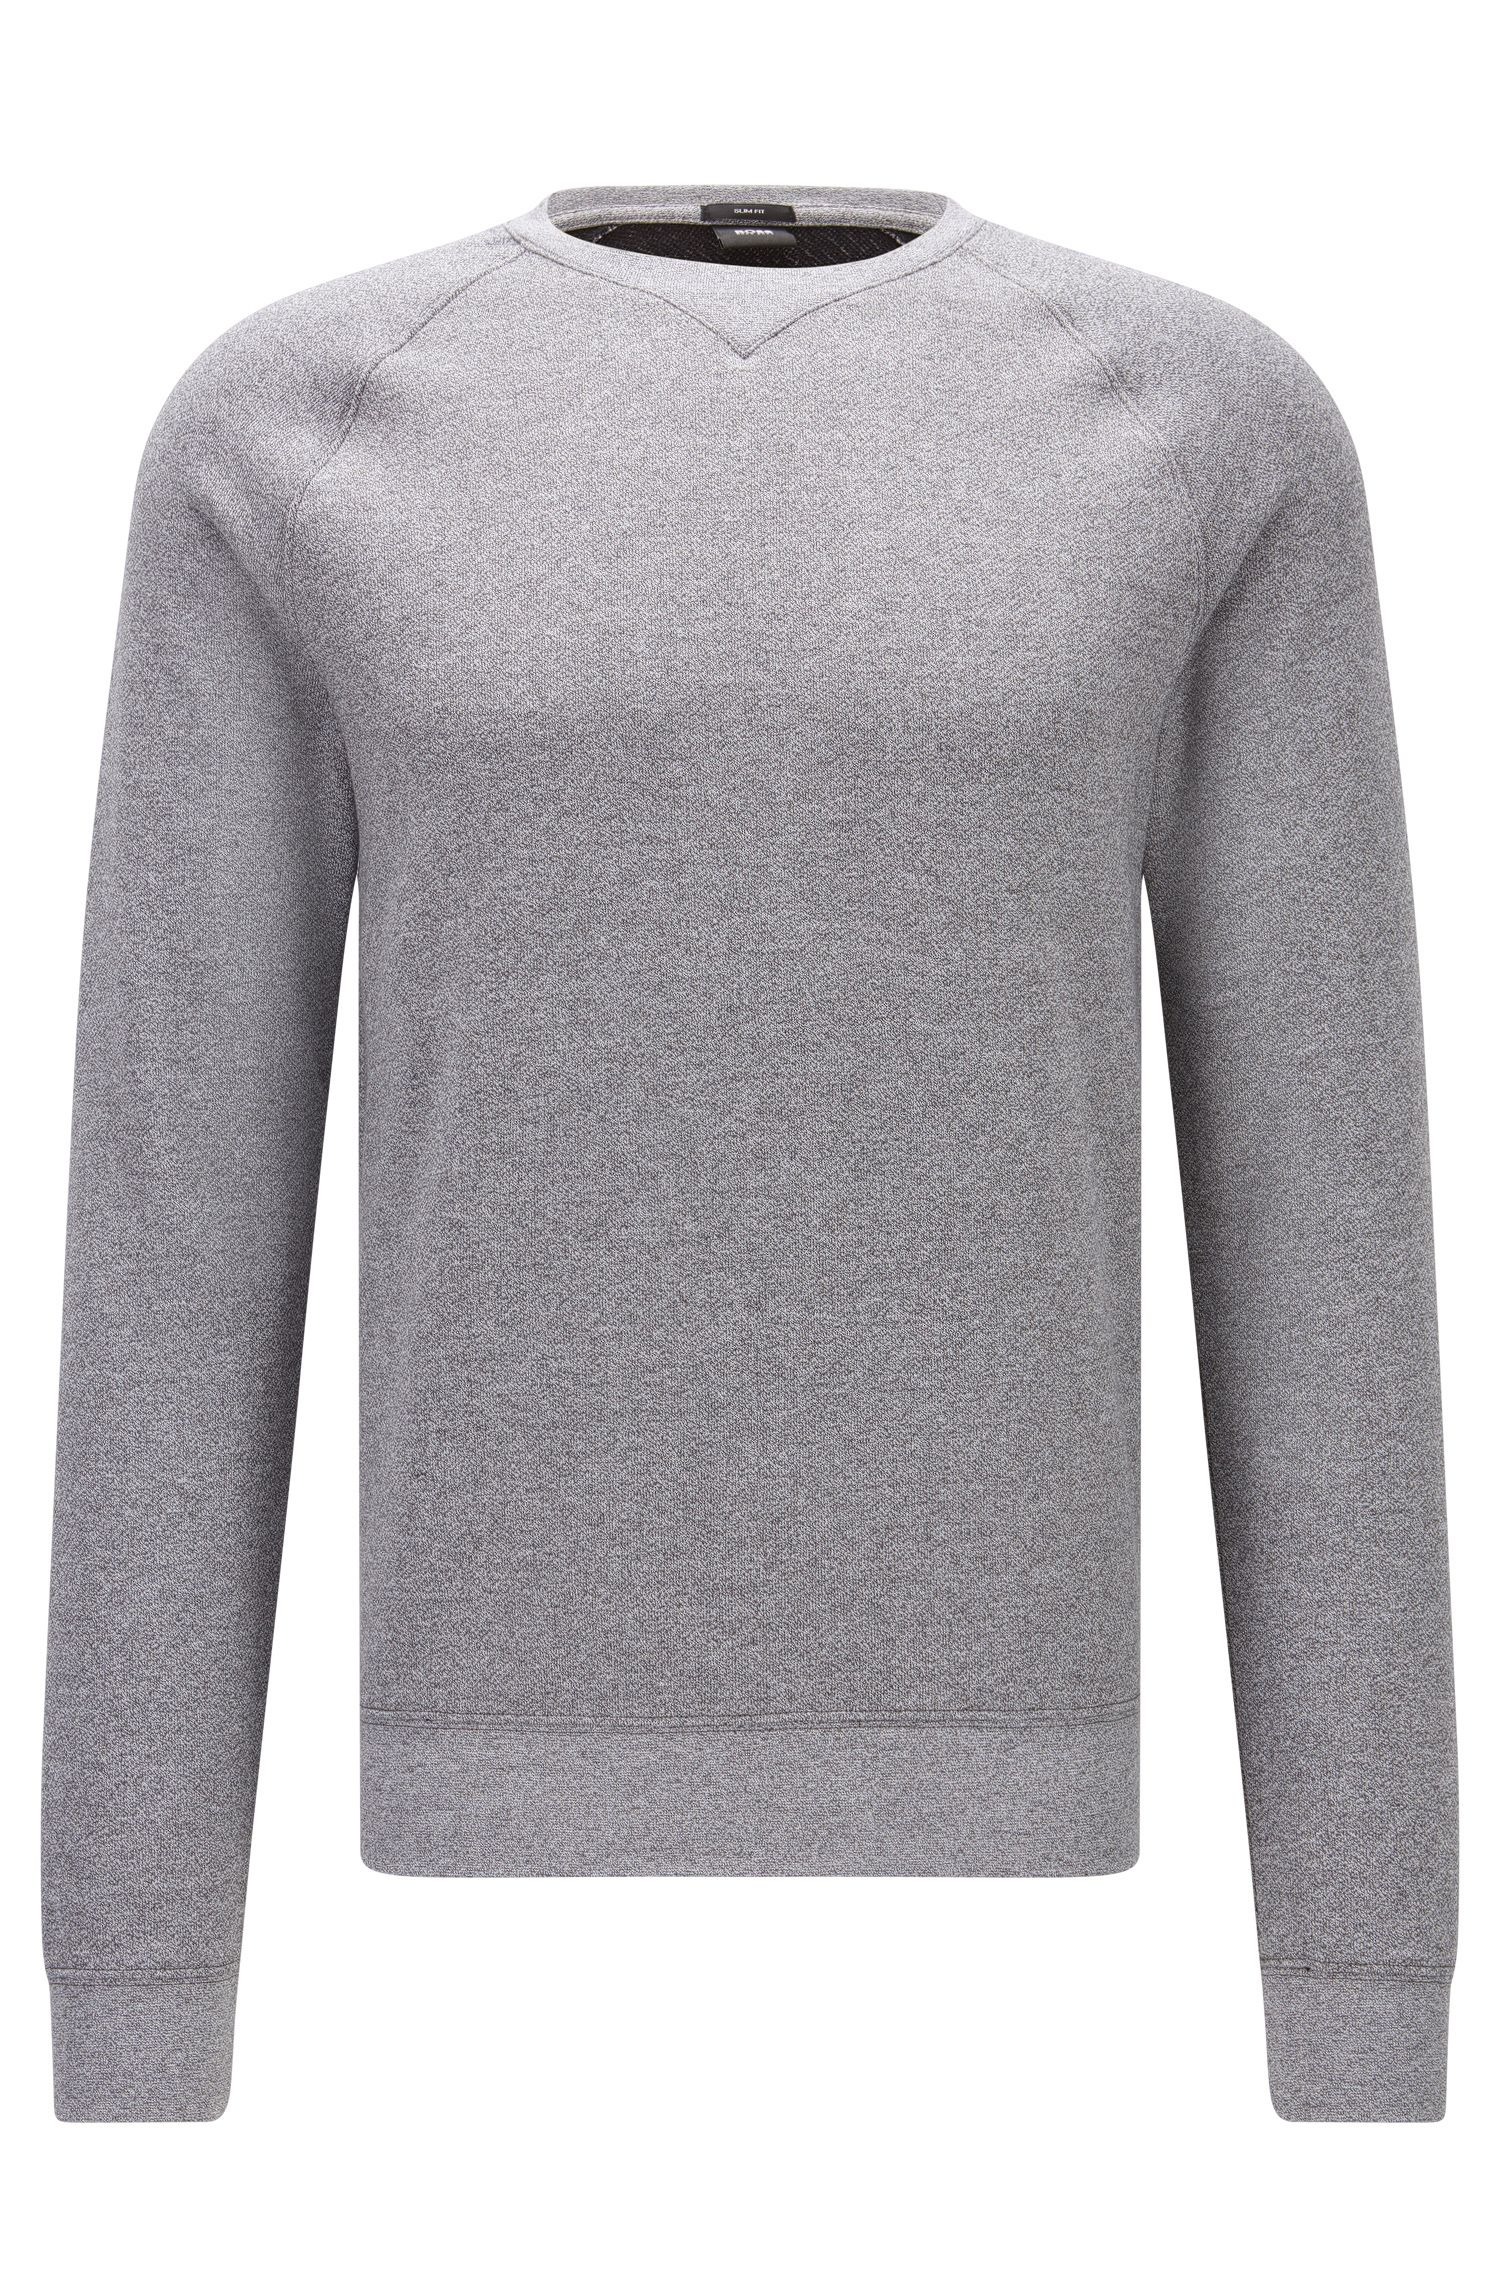 Mouliné sweatshirt in soft cotton